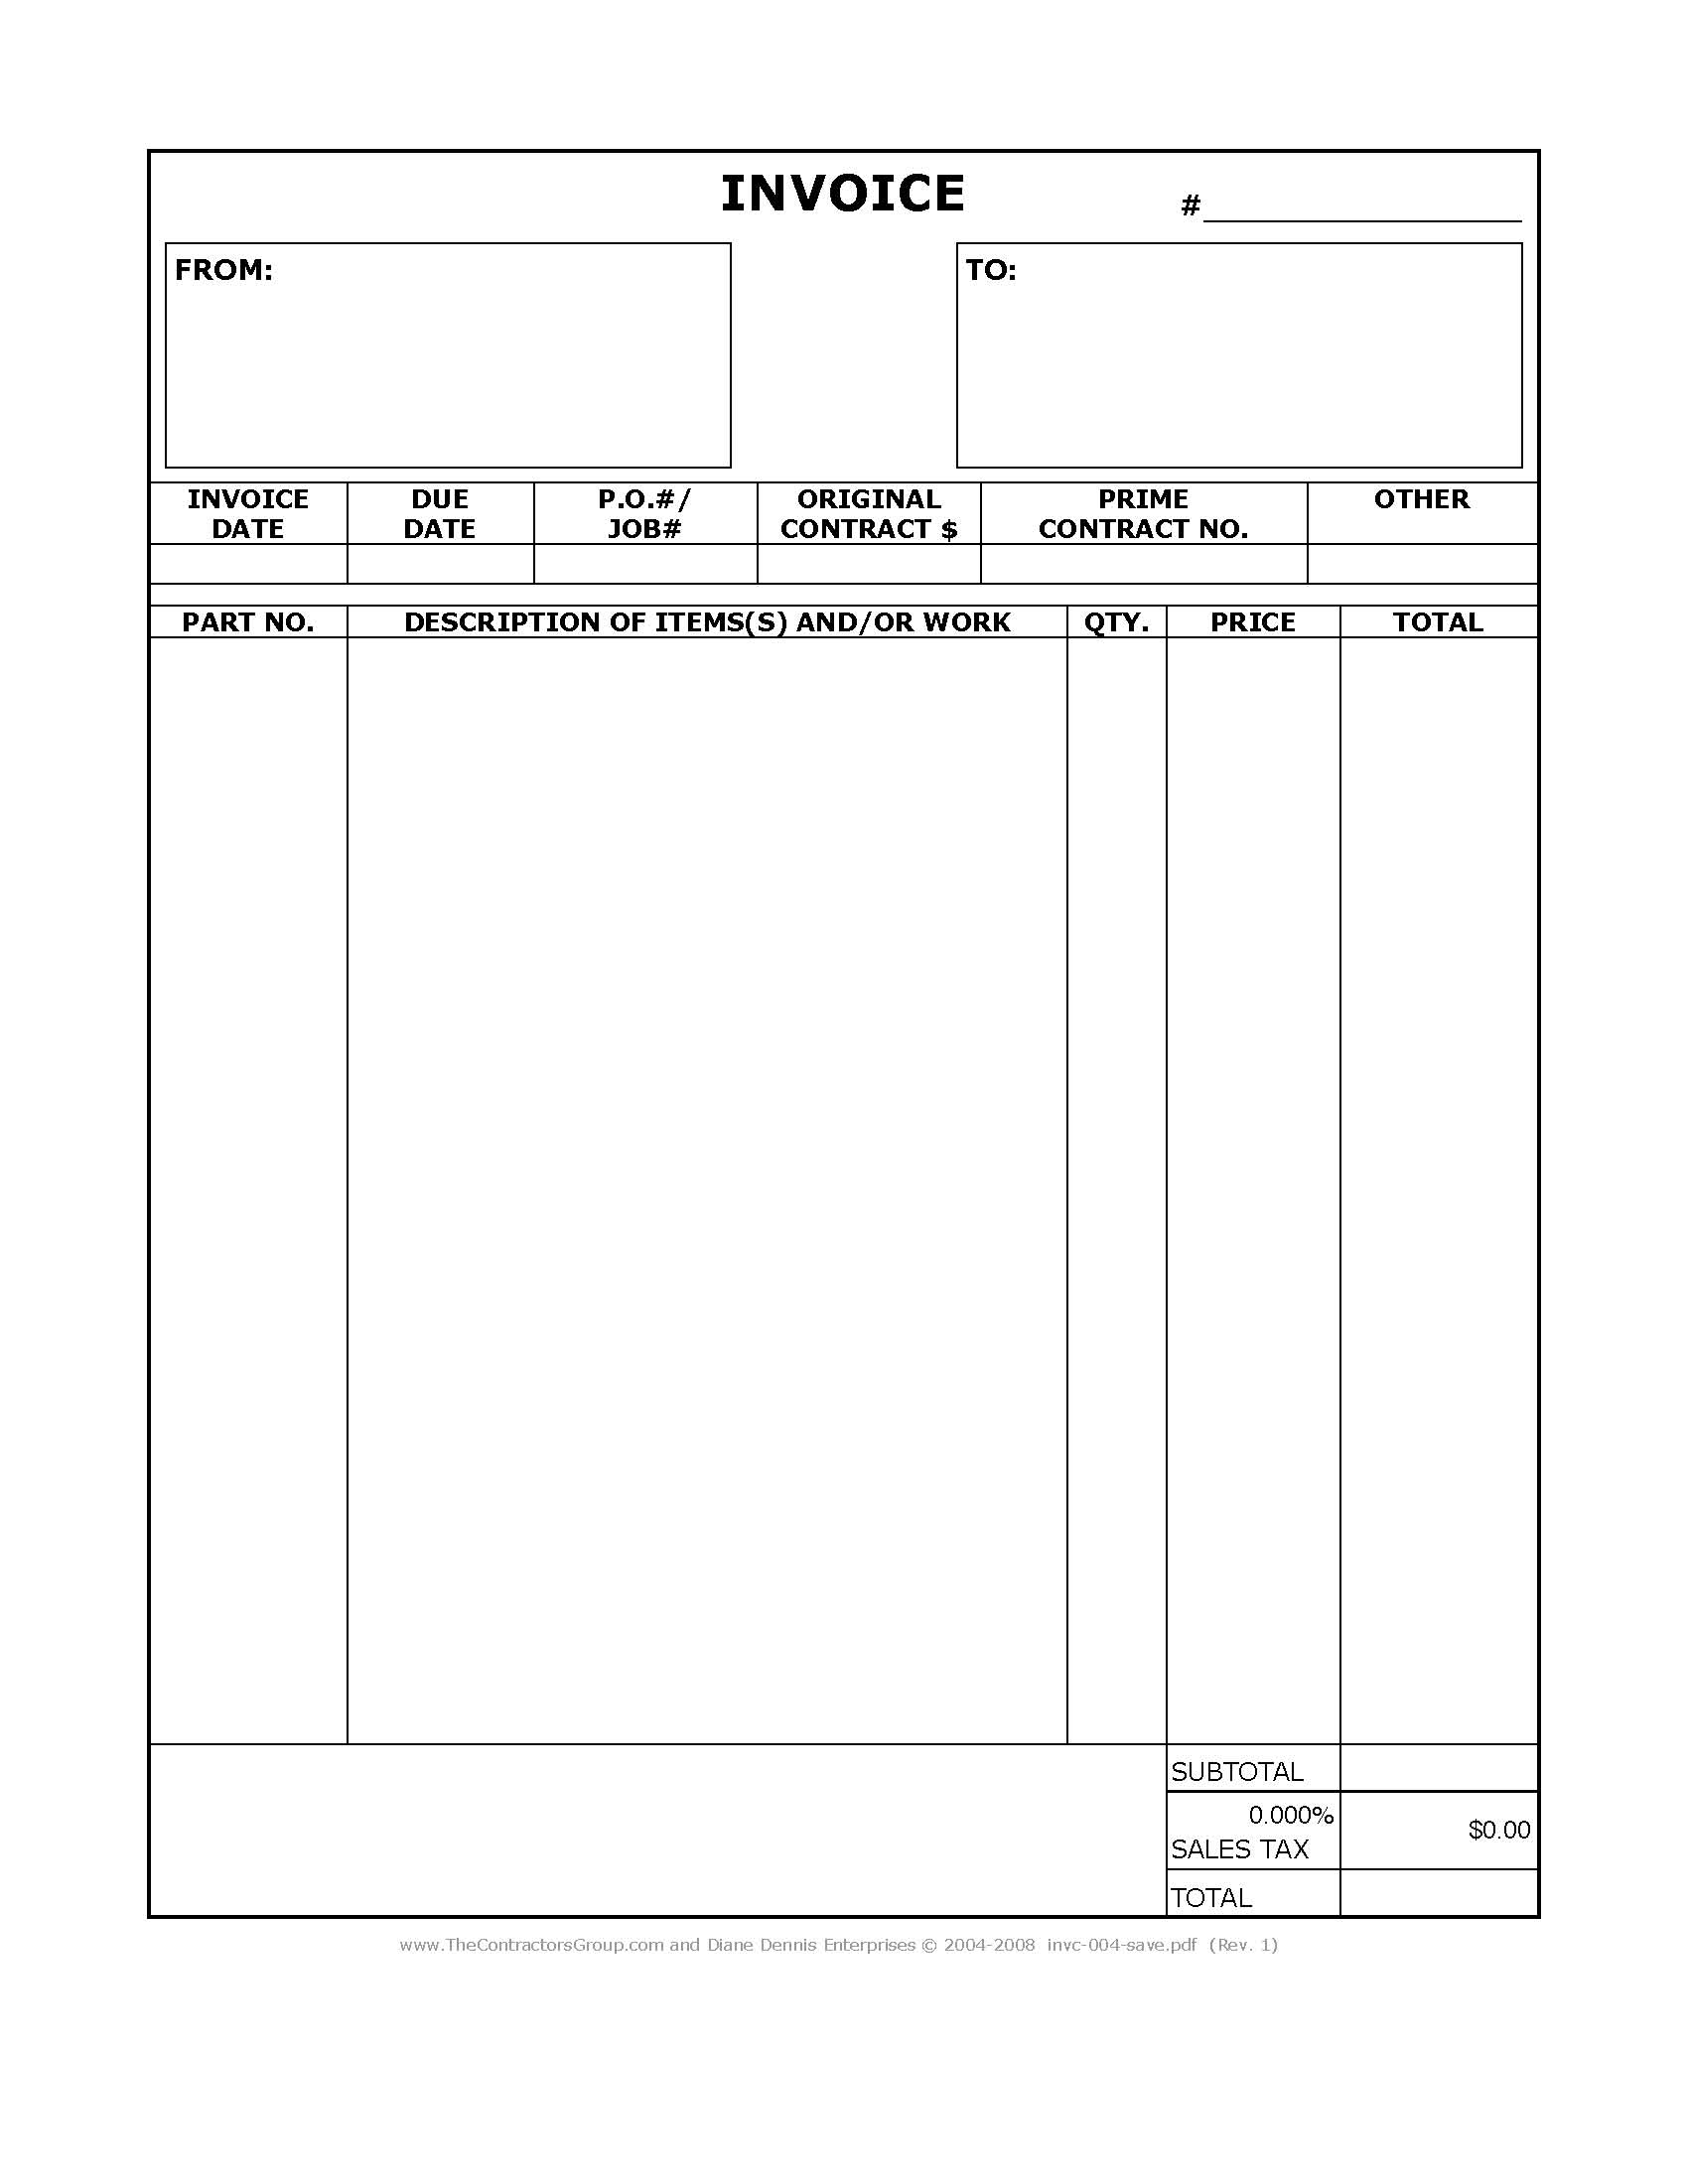 Image of a construction invoice form